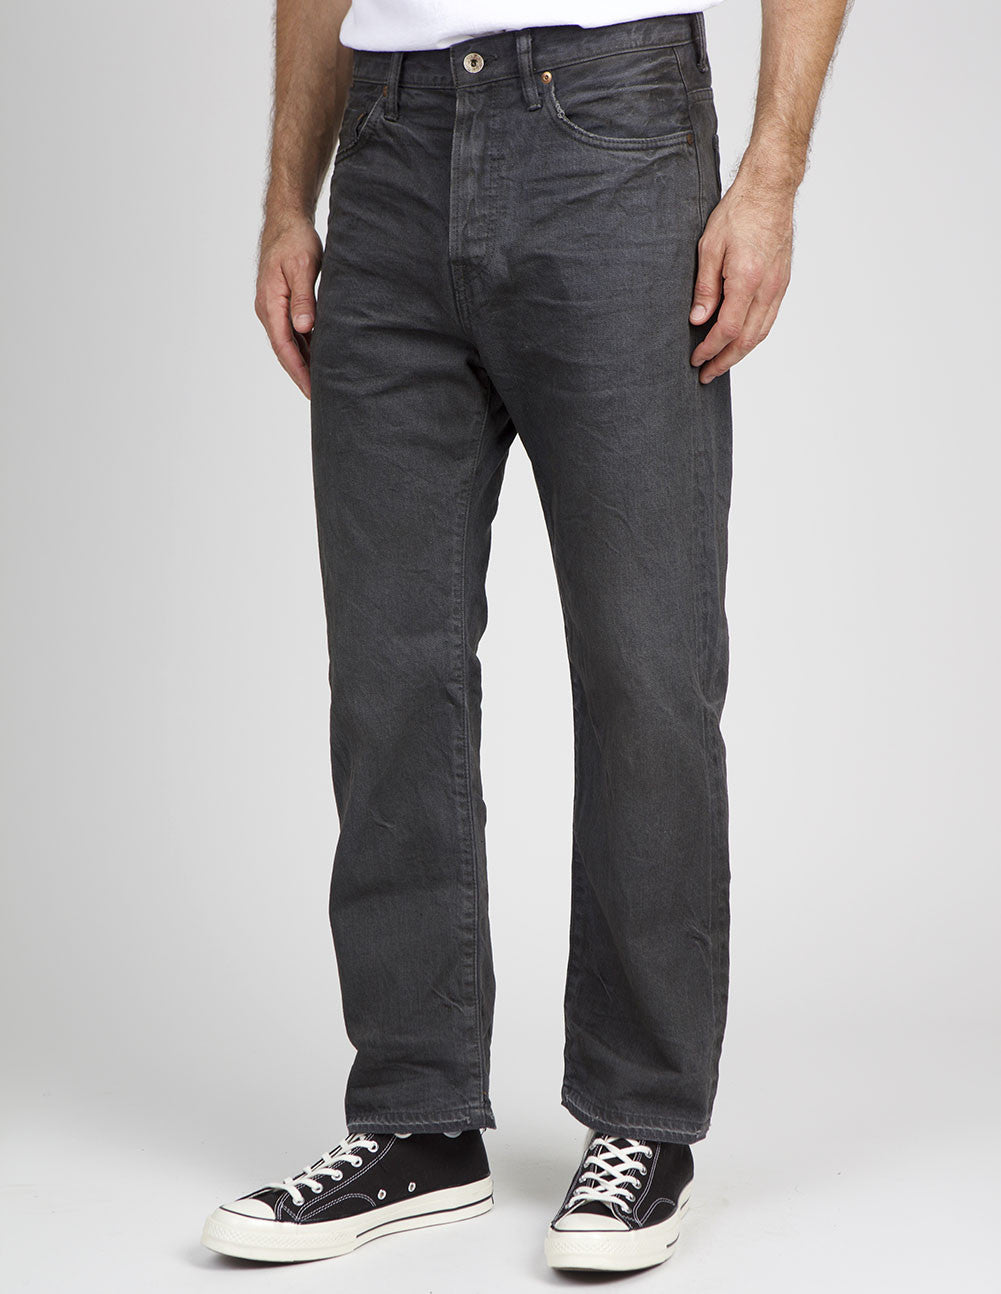 Selvedge Ankle Cut Charcoal Jeans